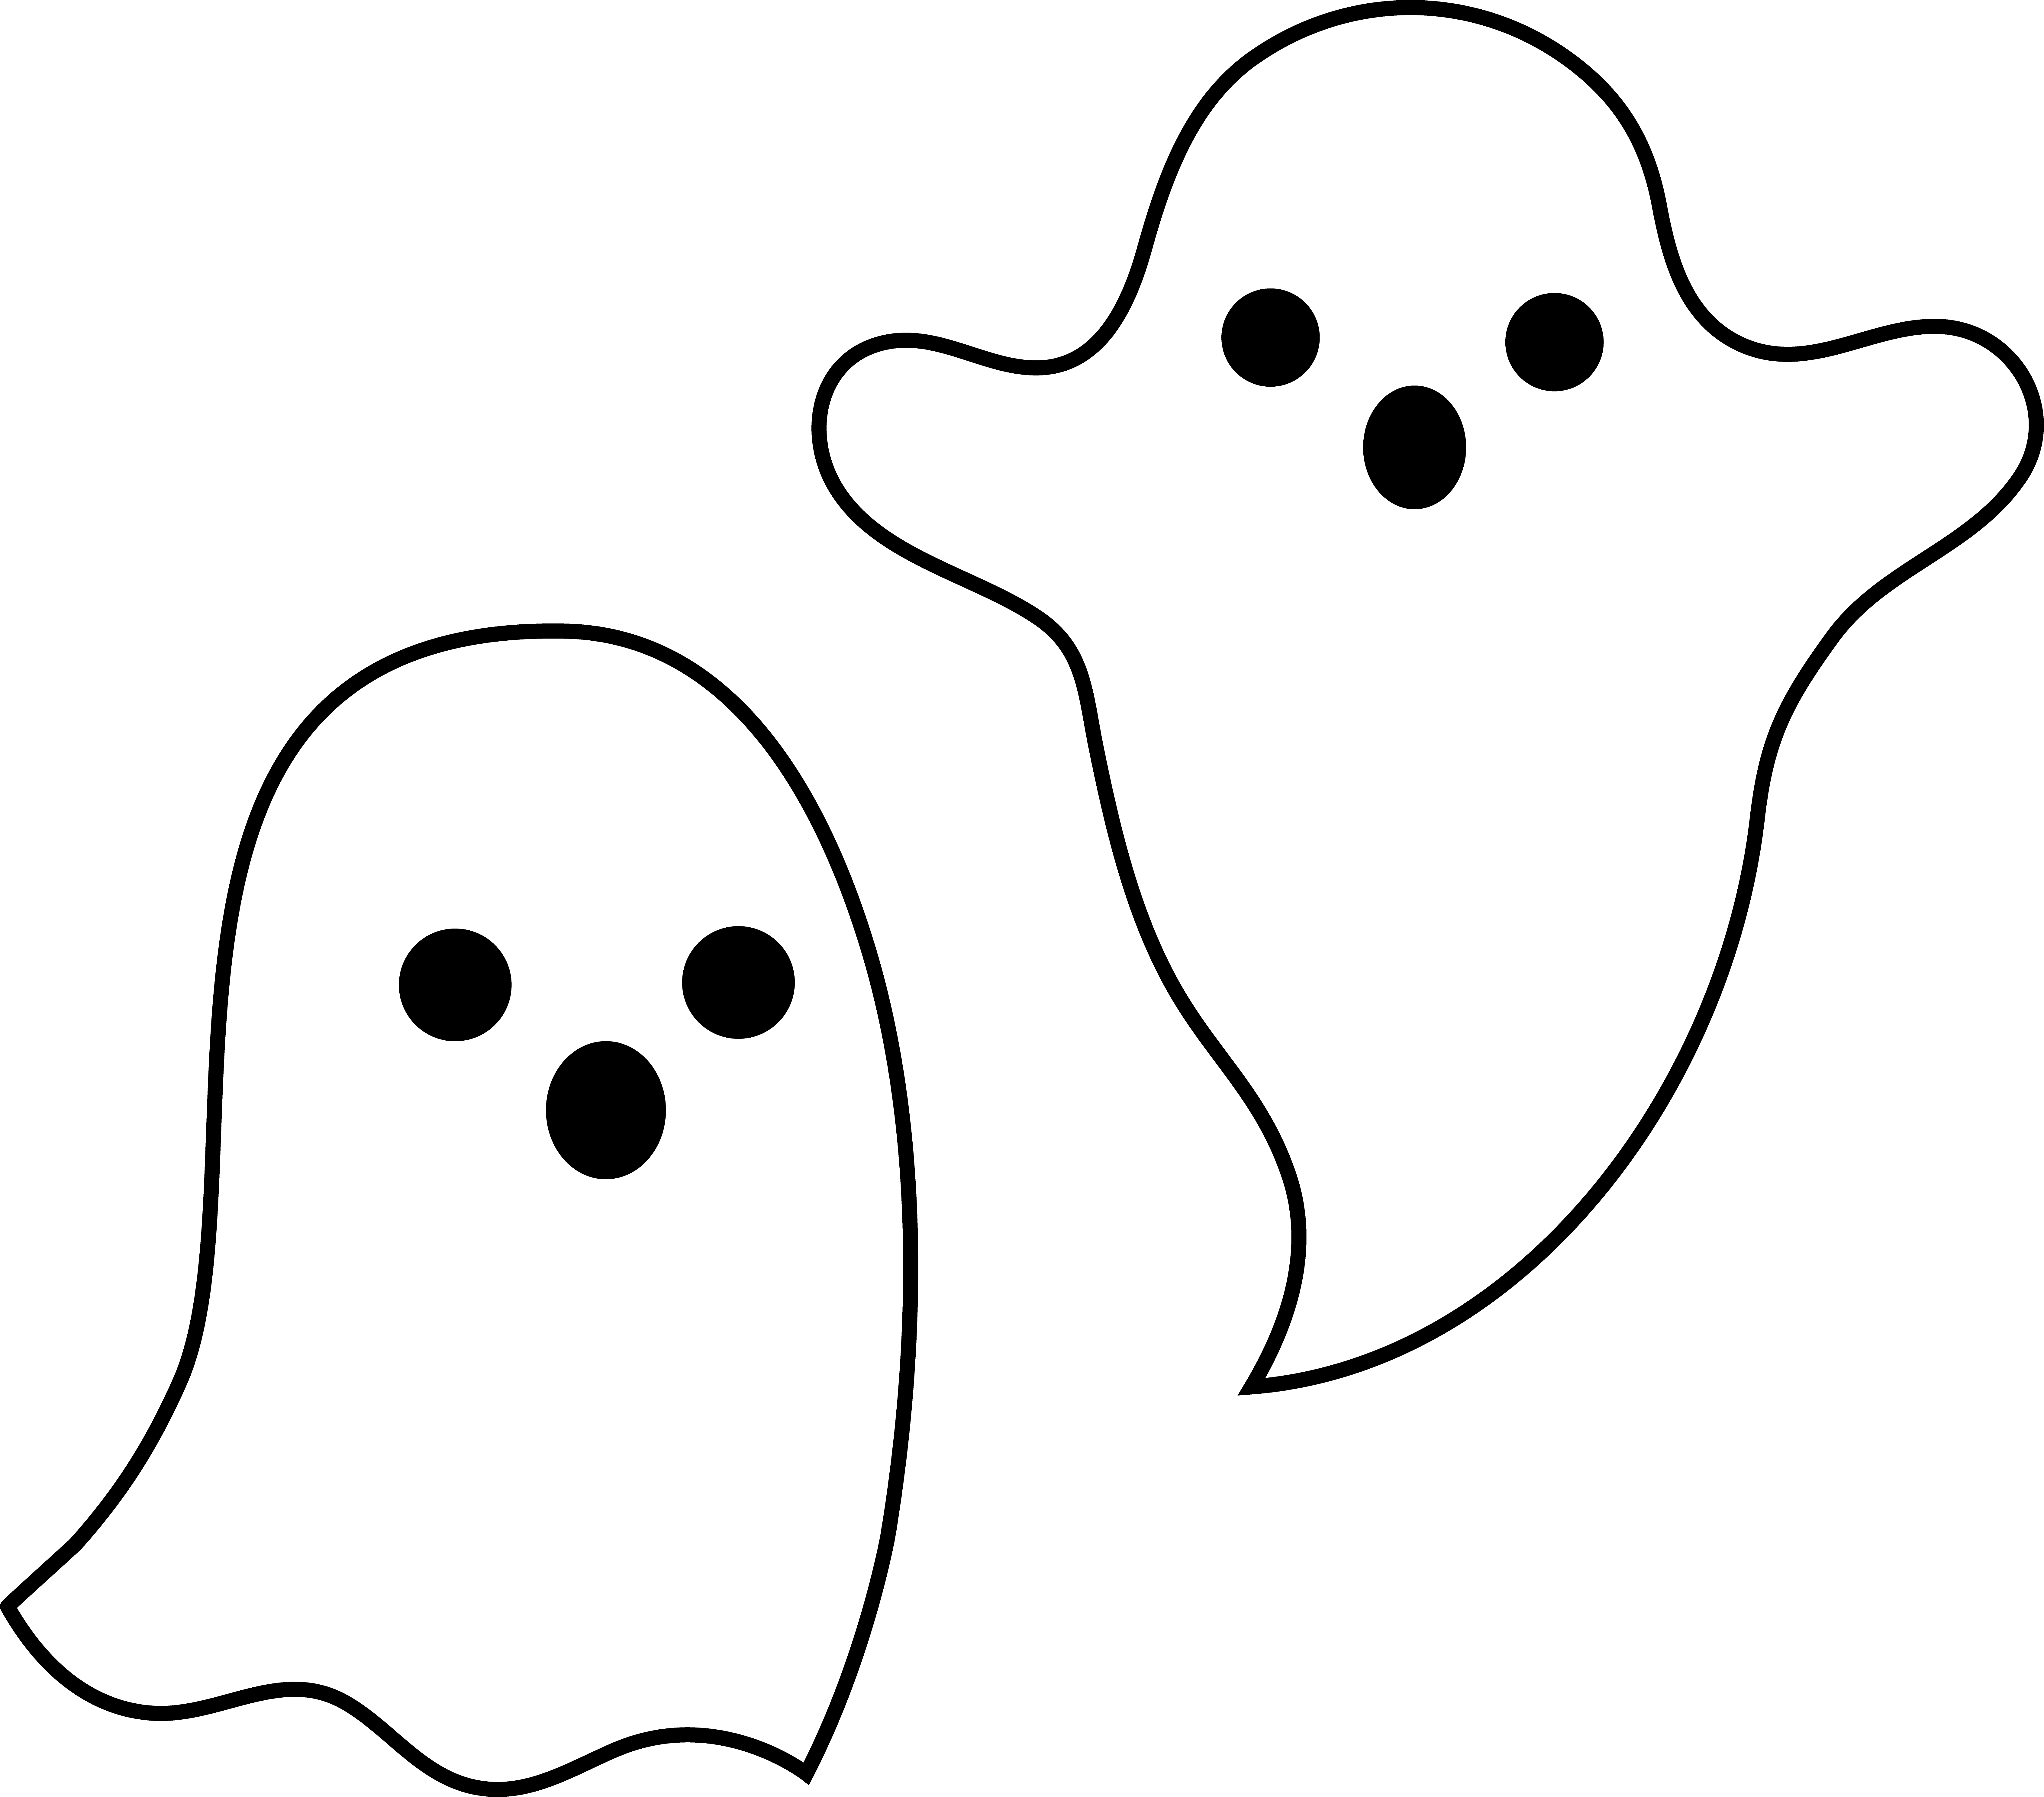 How To Draw Scream together with Ninja Morphsuit For Kids likewise Scary Werewolf Coloring Pages in addition Reviewbooksandmore further Halloween Drawing. on scary halloween comments